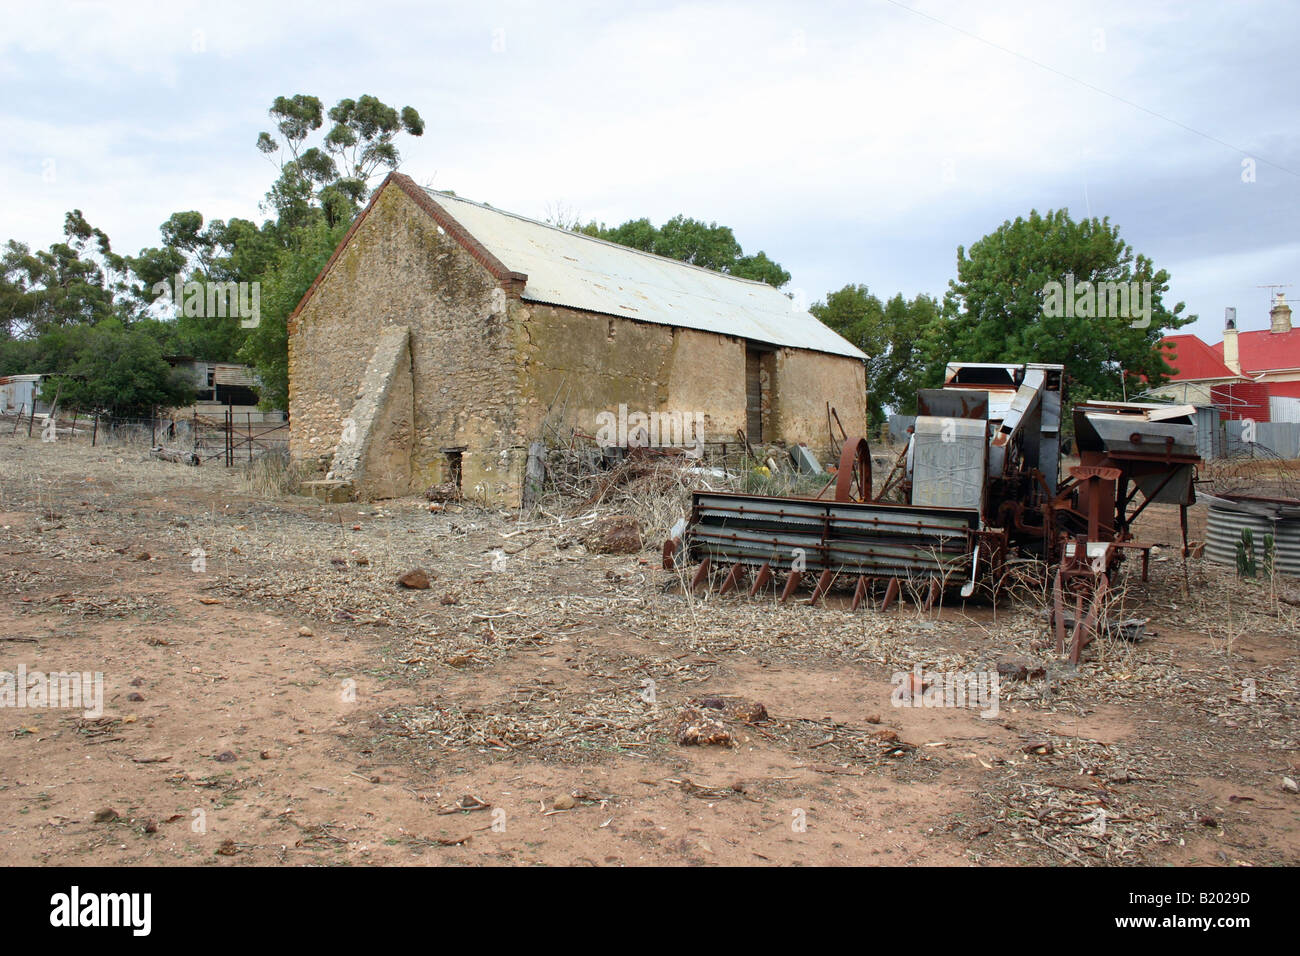 An old piece of farm machinery outside a 120 year old barn on a farm in Australia - Stock Image